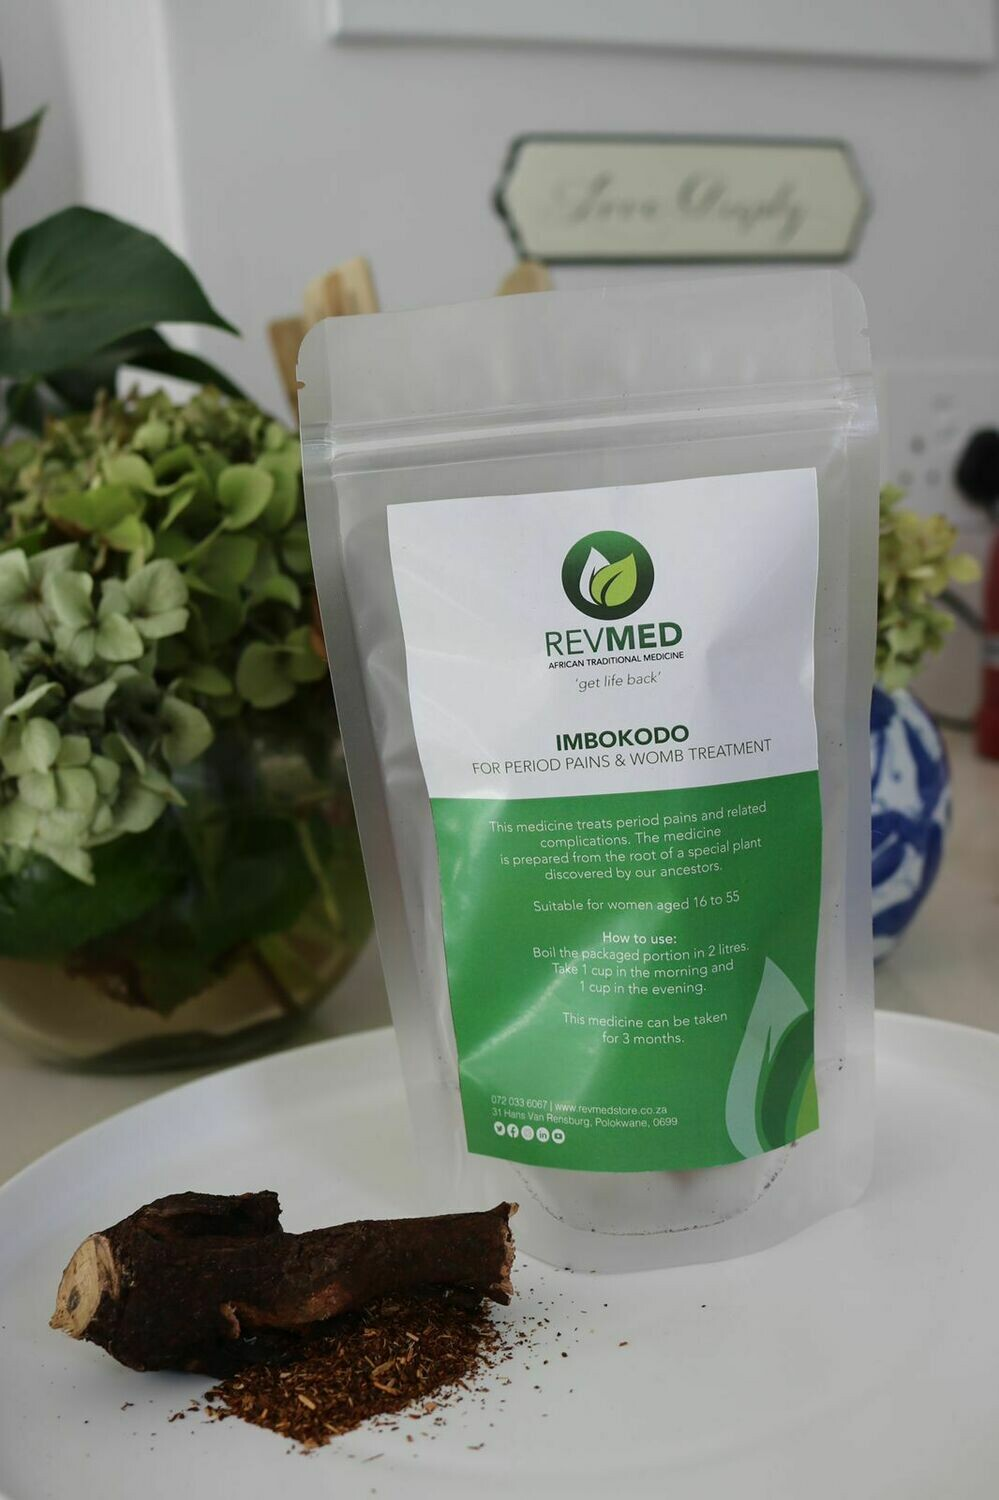 IMBOKODO - FOR PERIOD PAINS AND WOMB TREATMENT